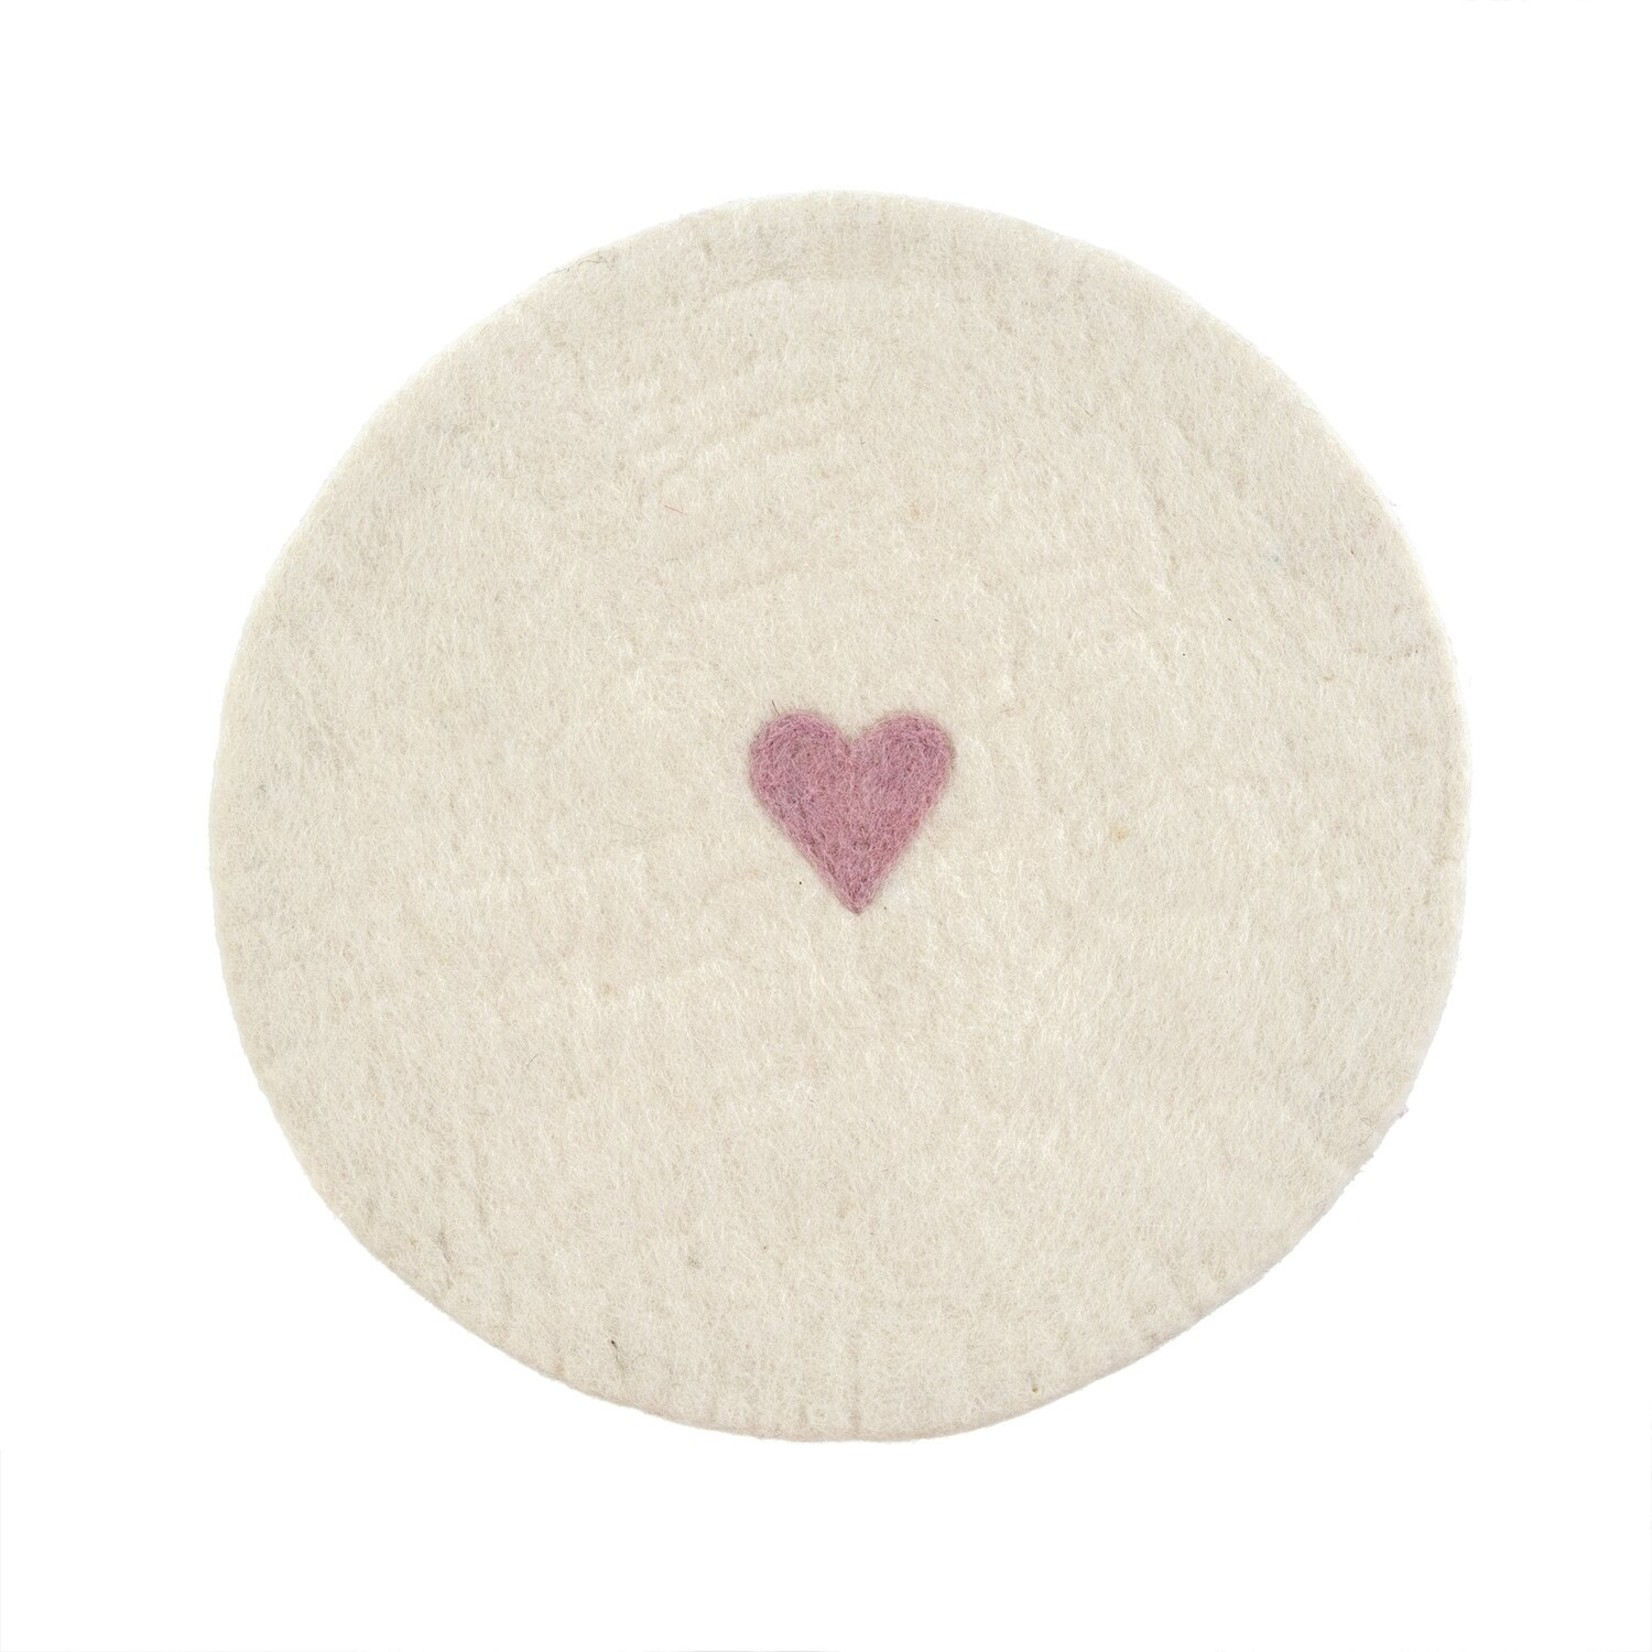 Indaba Felted Heart Placemat